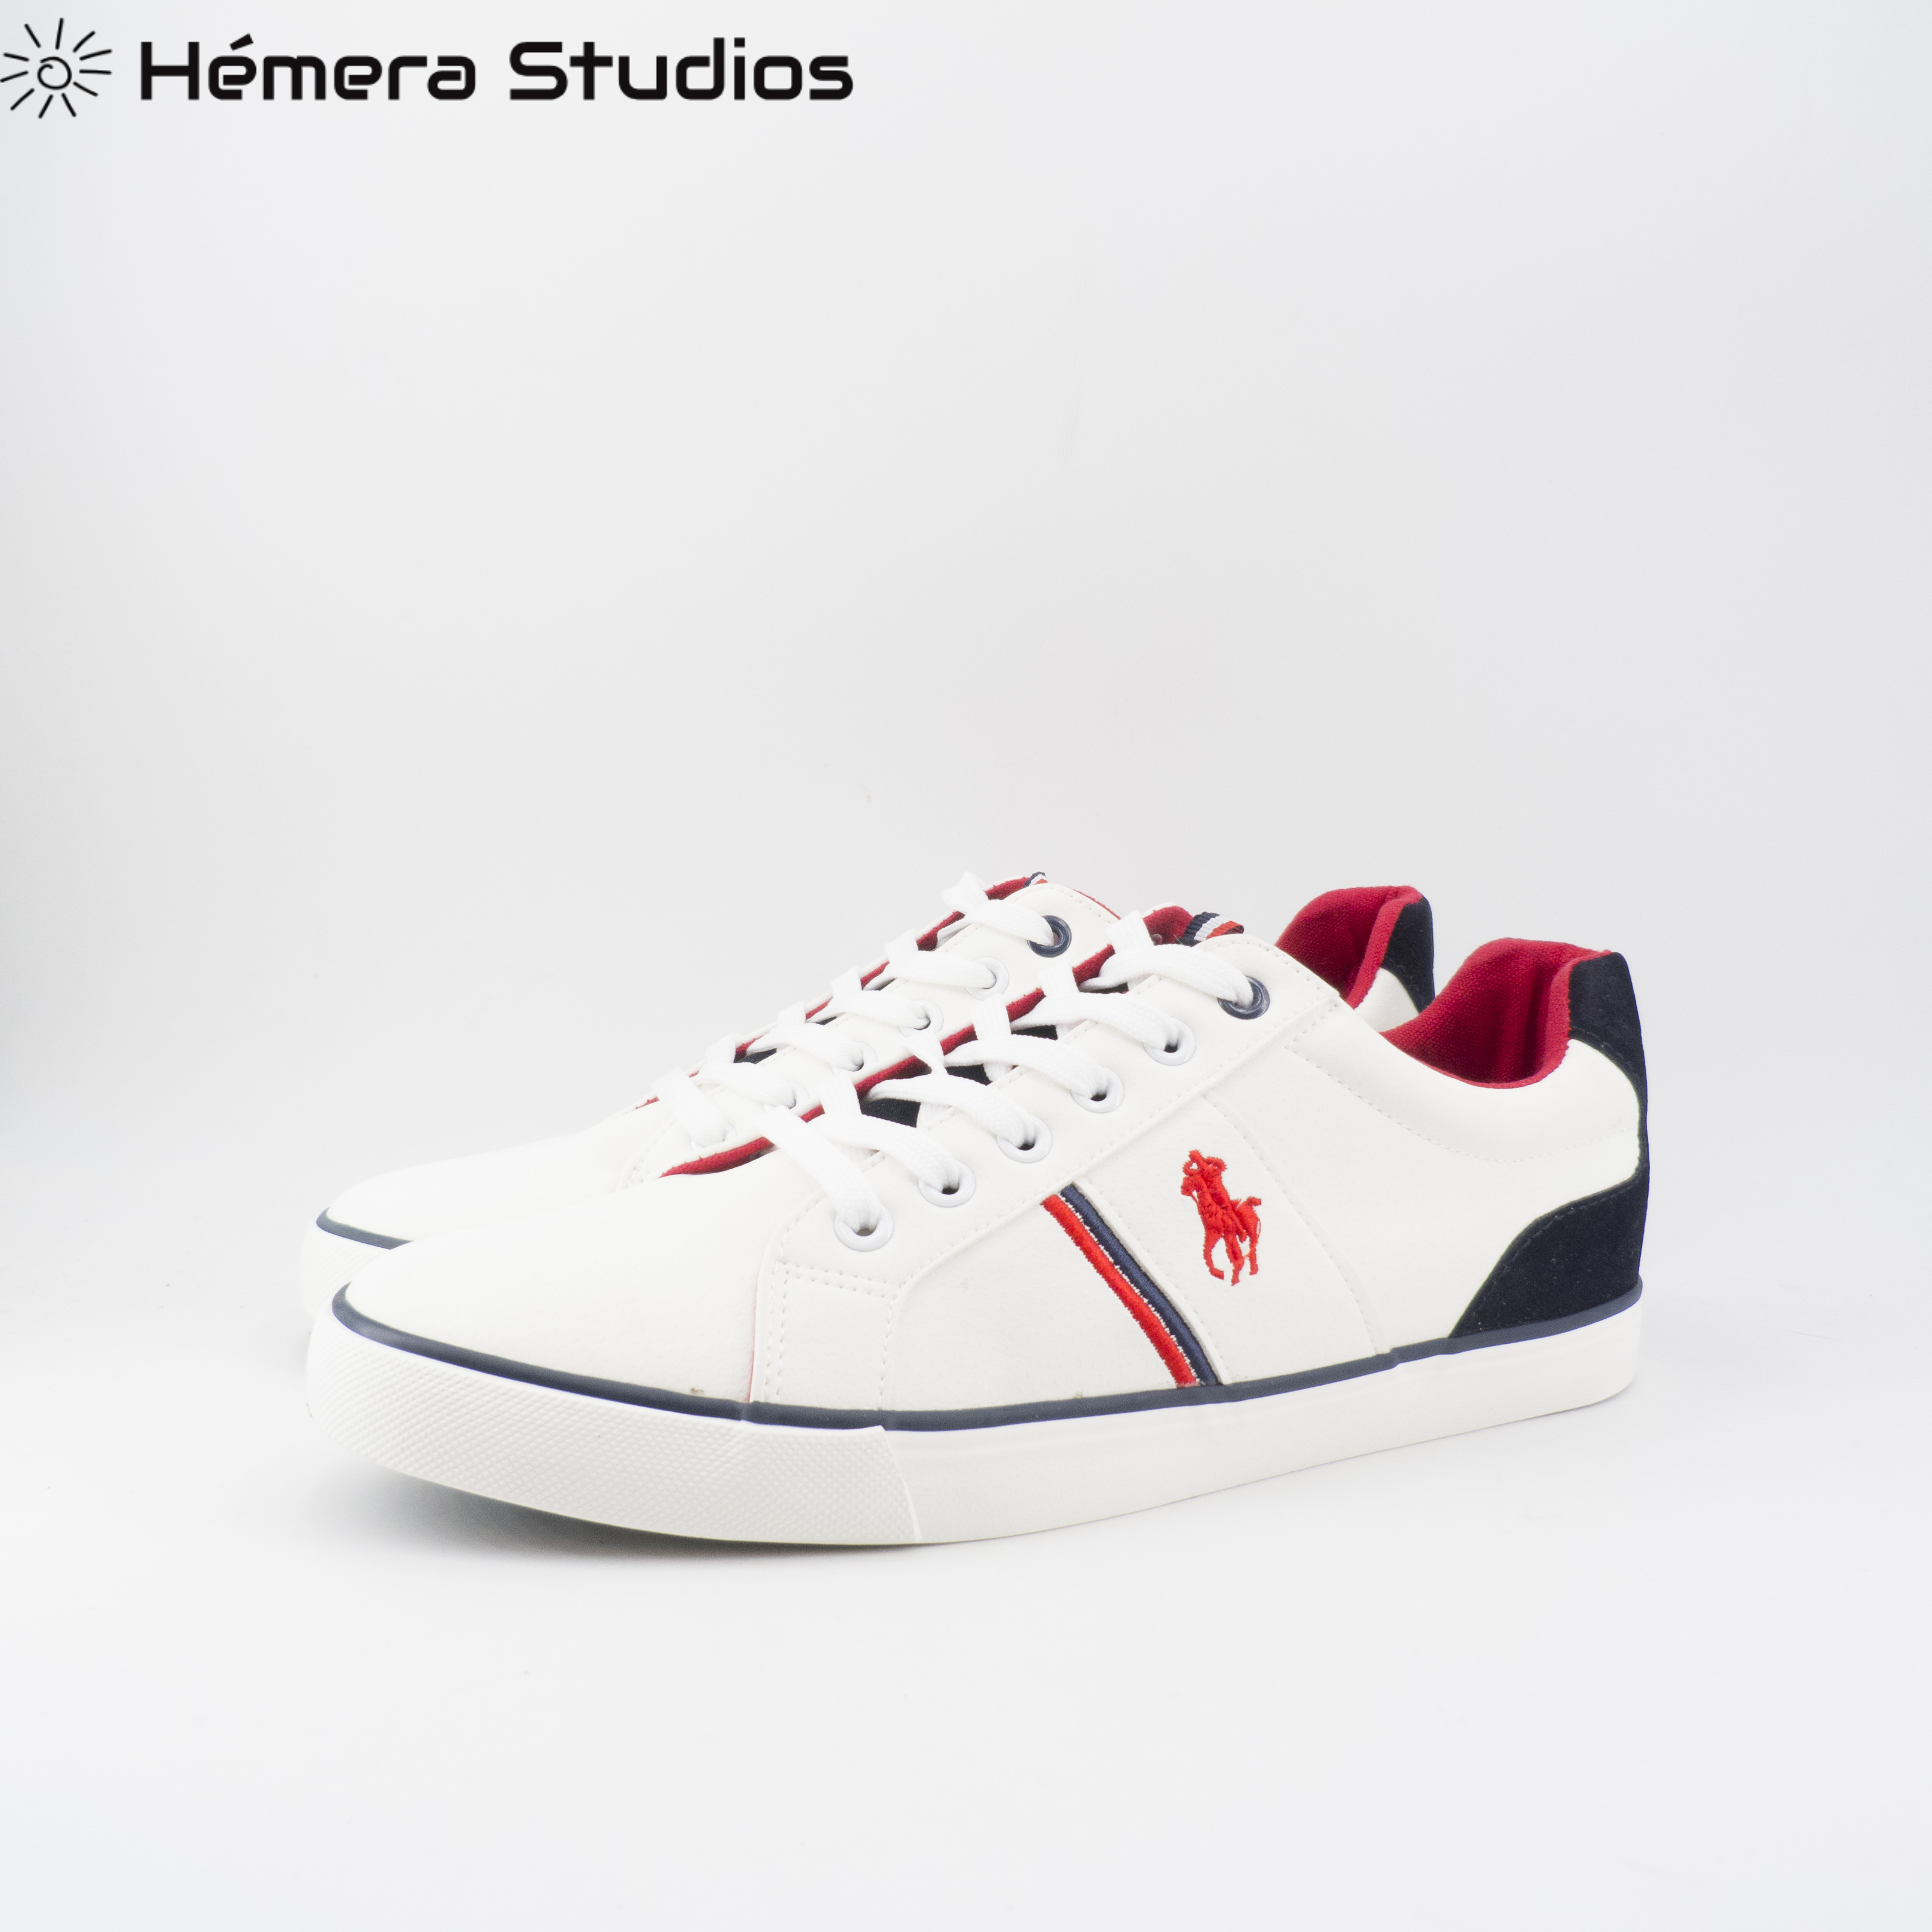 Man Shoes Shoes Comfortable Casual Shoes For Men Footwear Men Shoes With Laces In White And Navy Blue